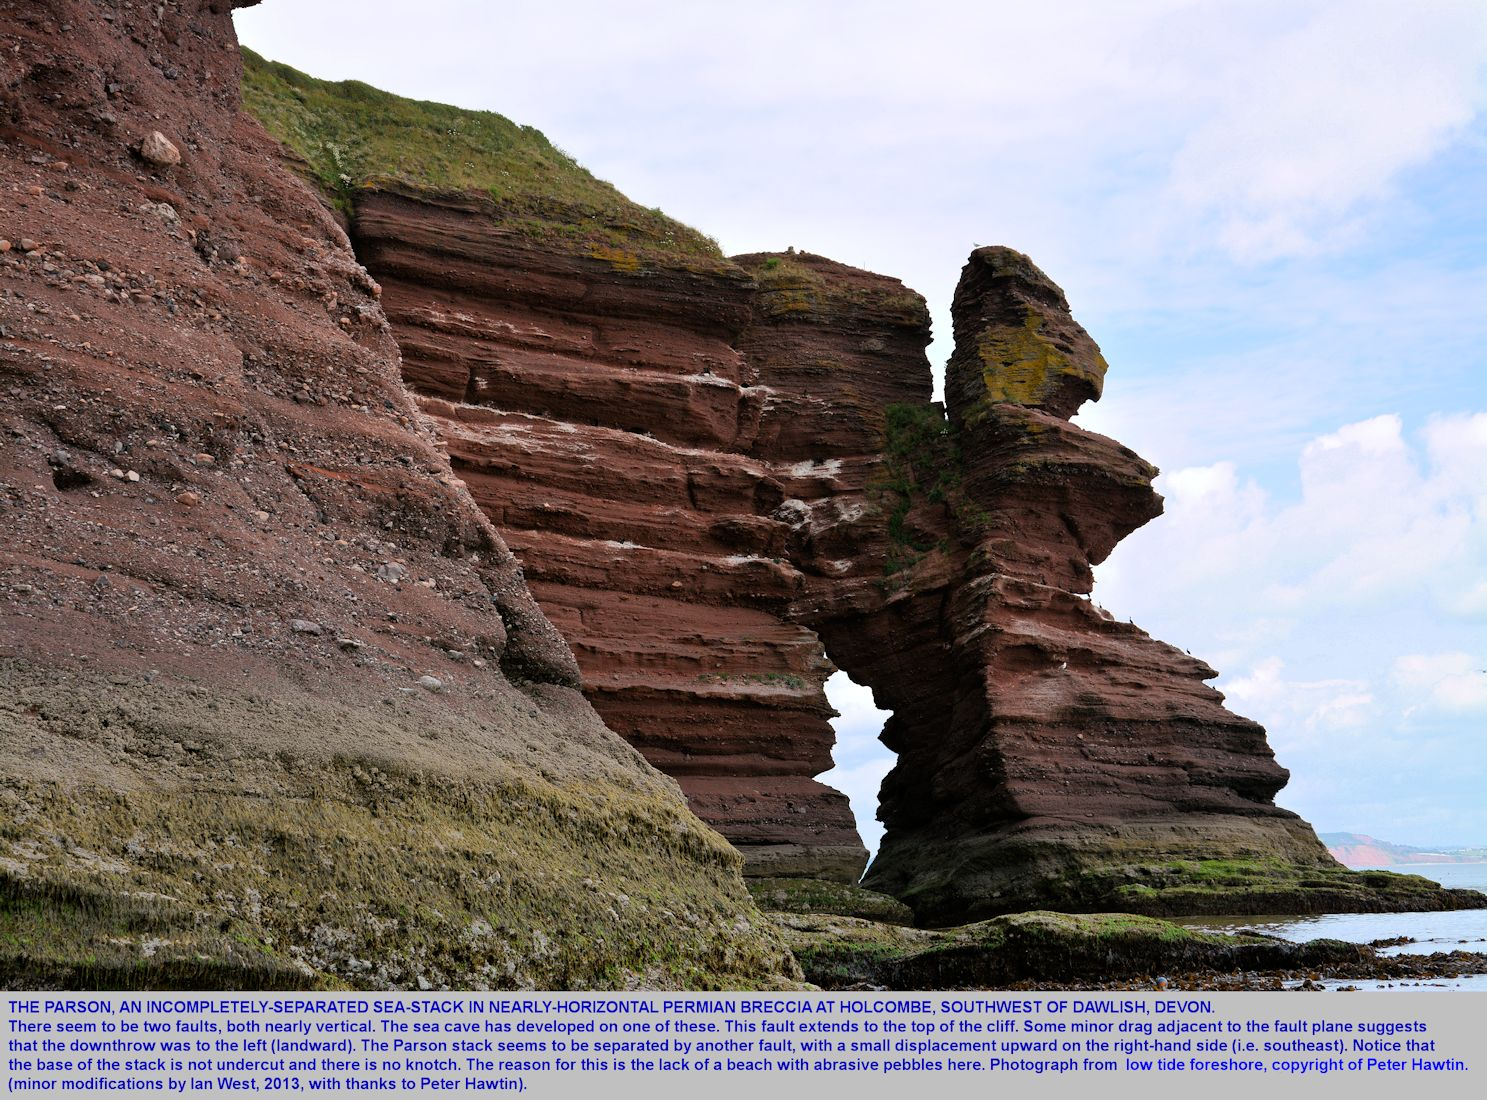 The Parson sea stack, seen from a boat to the southwest, at Hole Head, Holcombe, near Dawlish, Devon, Peter Hawtin photograph, 2013